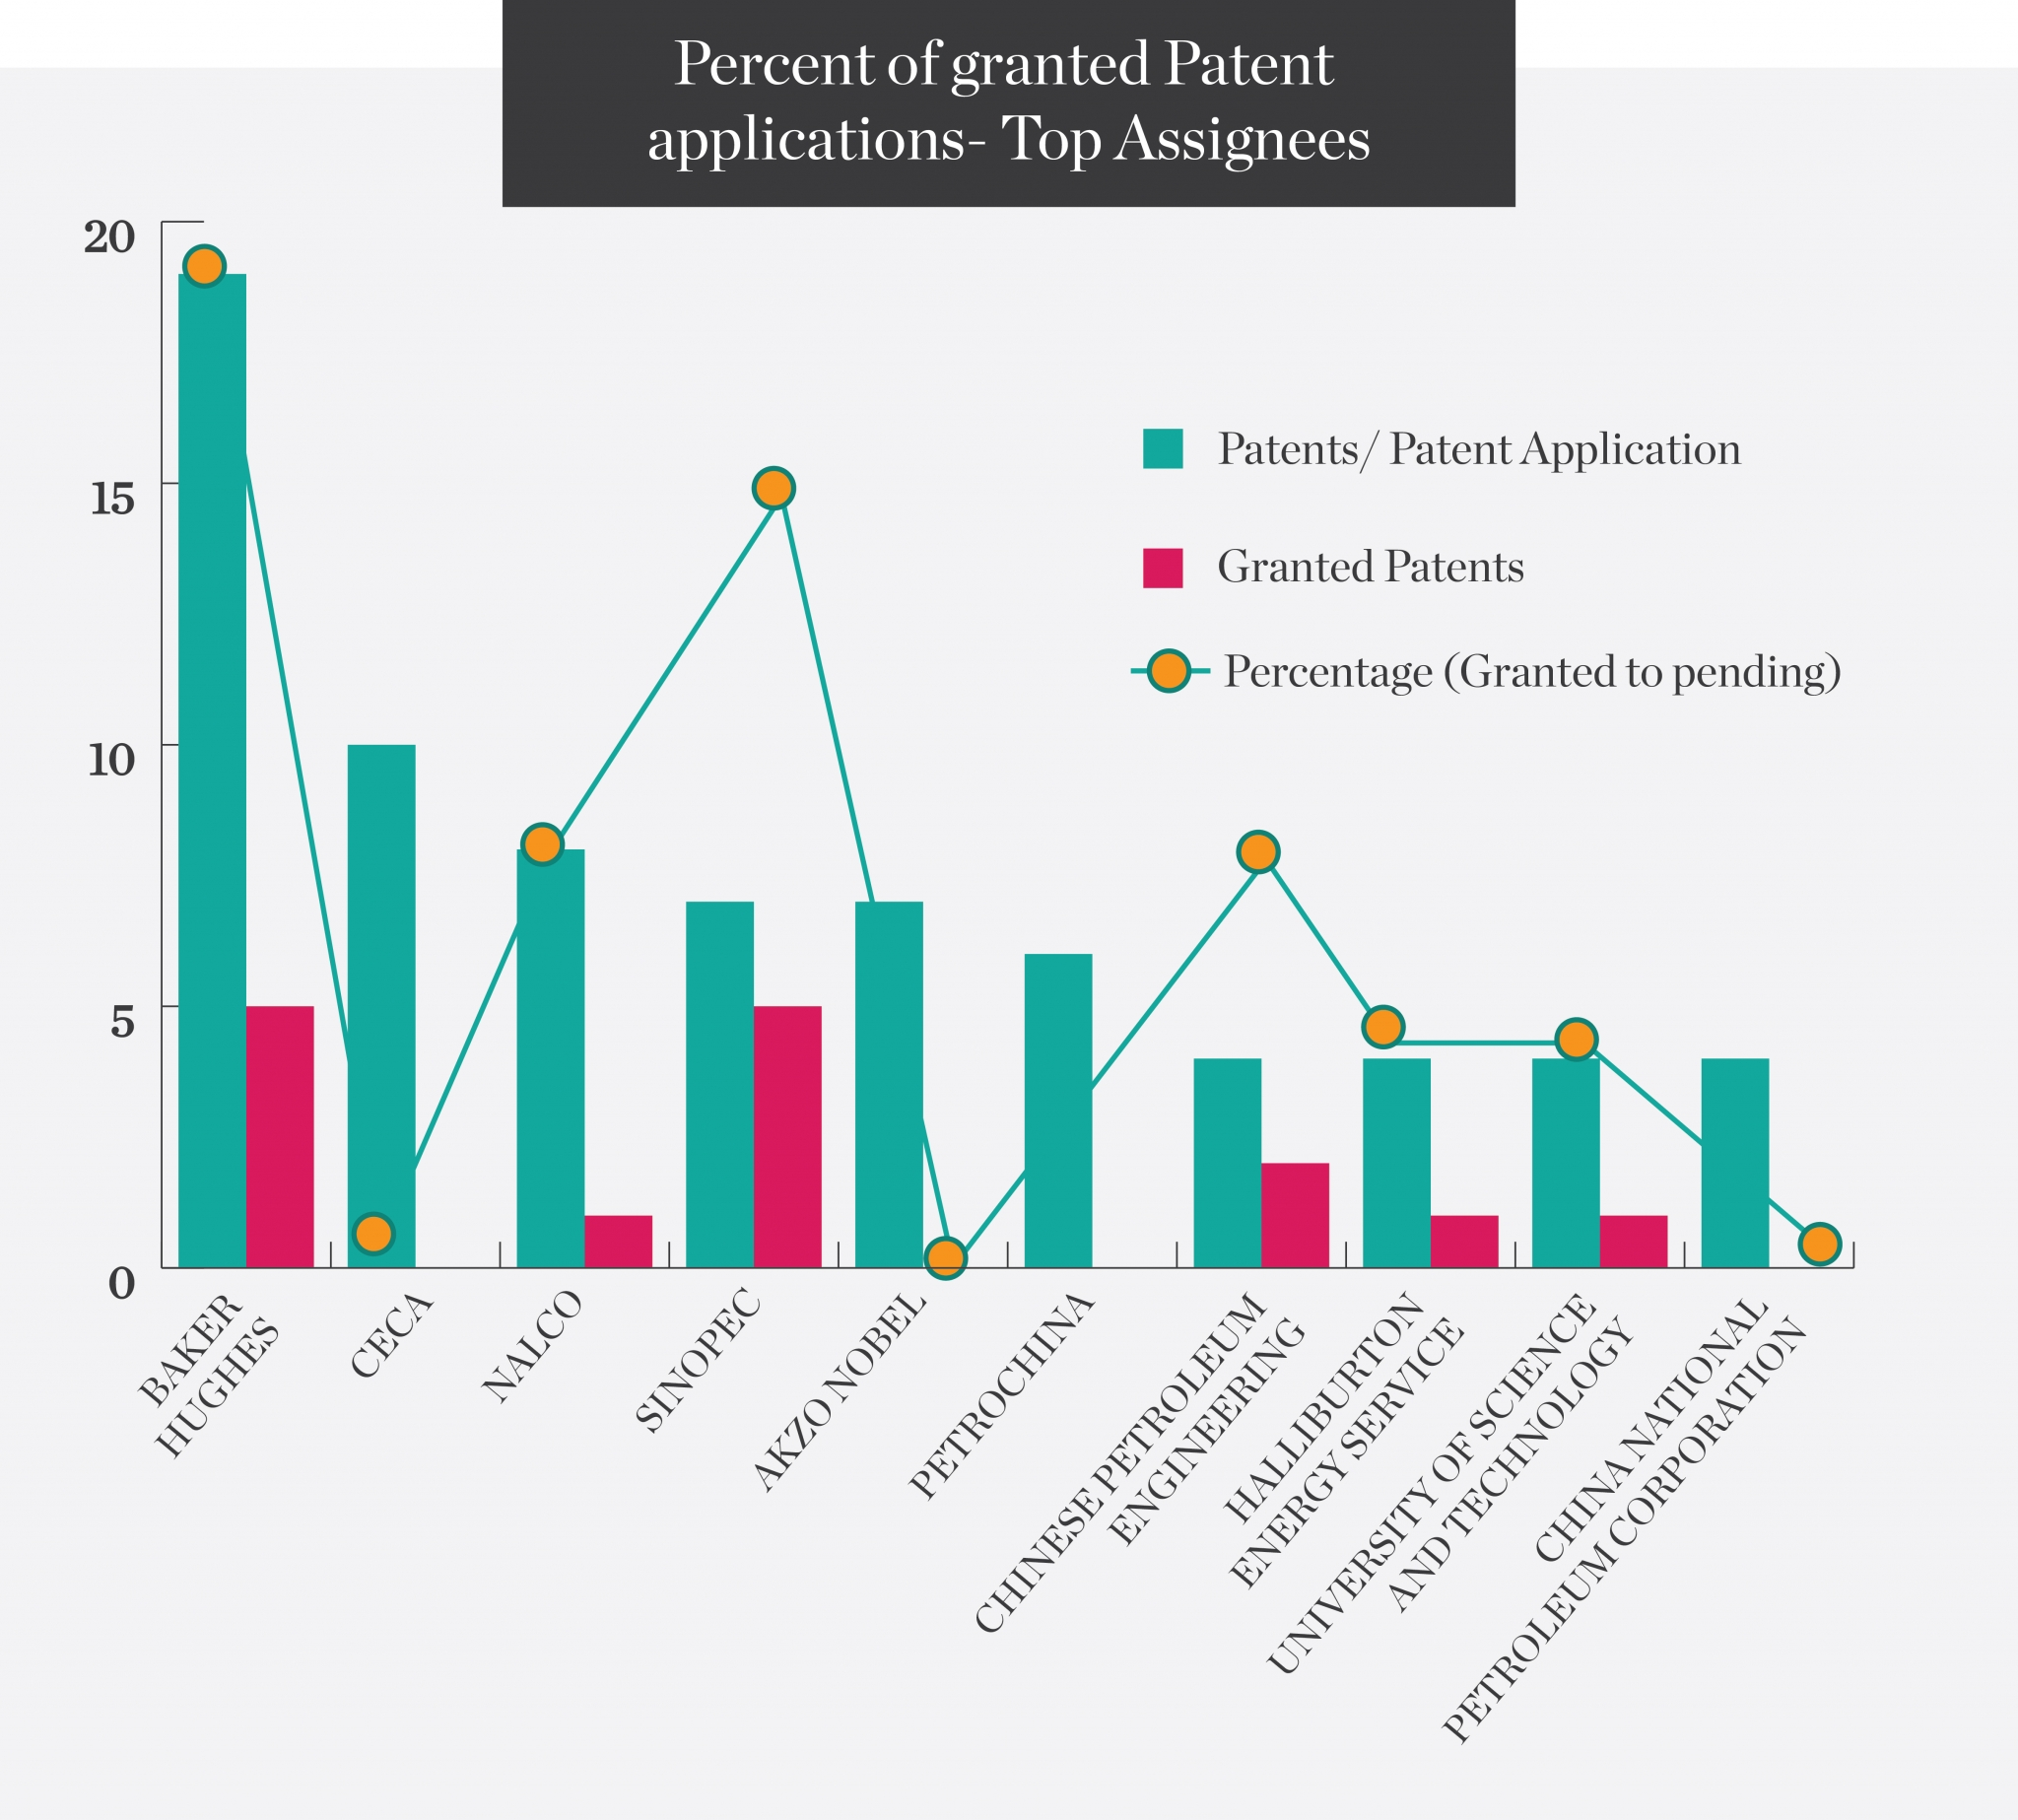 Percent-of-granted-Patent-applications-Top-Assignees